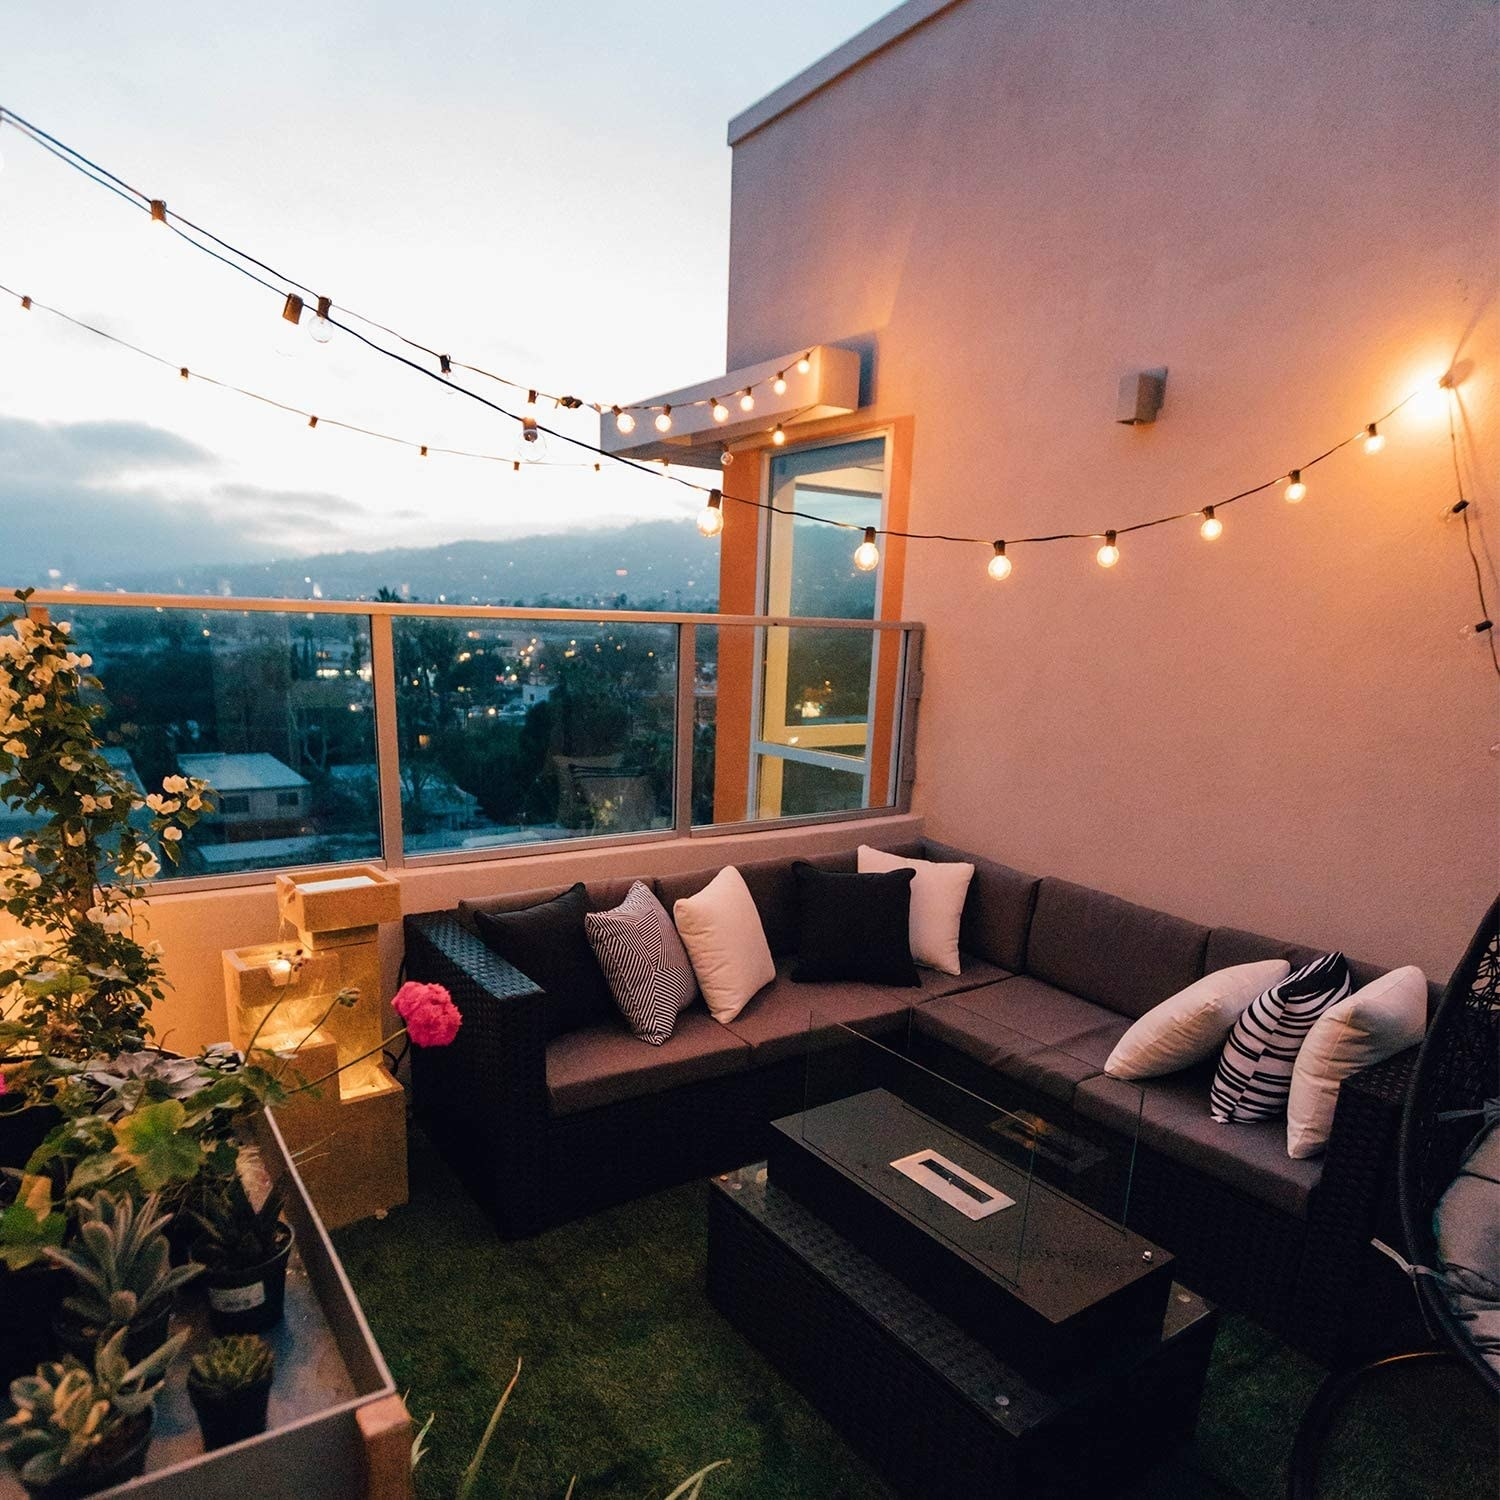 outdoor patio with bulb string lights hung up